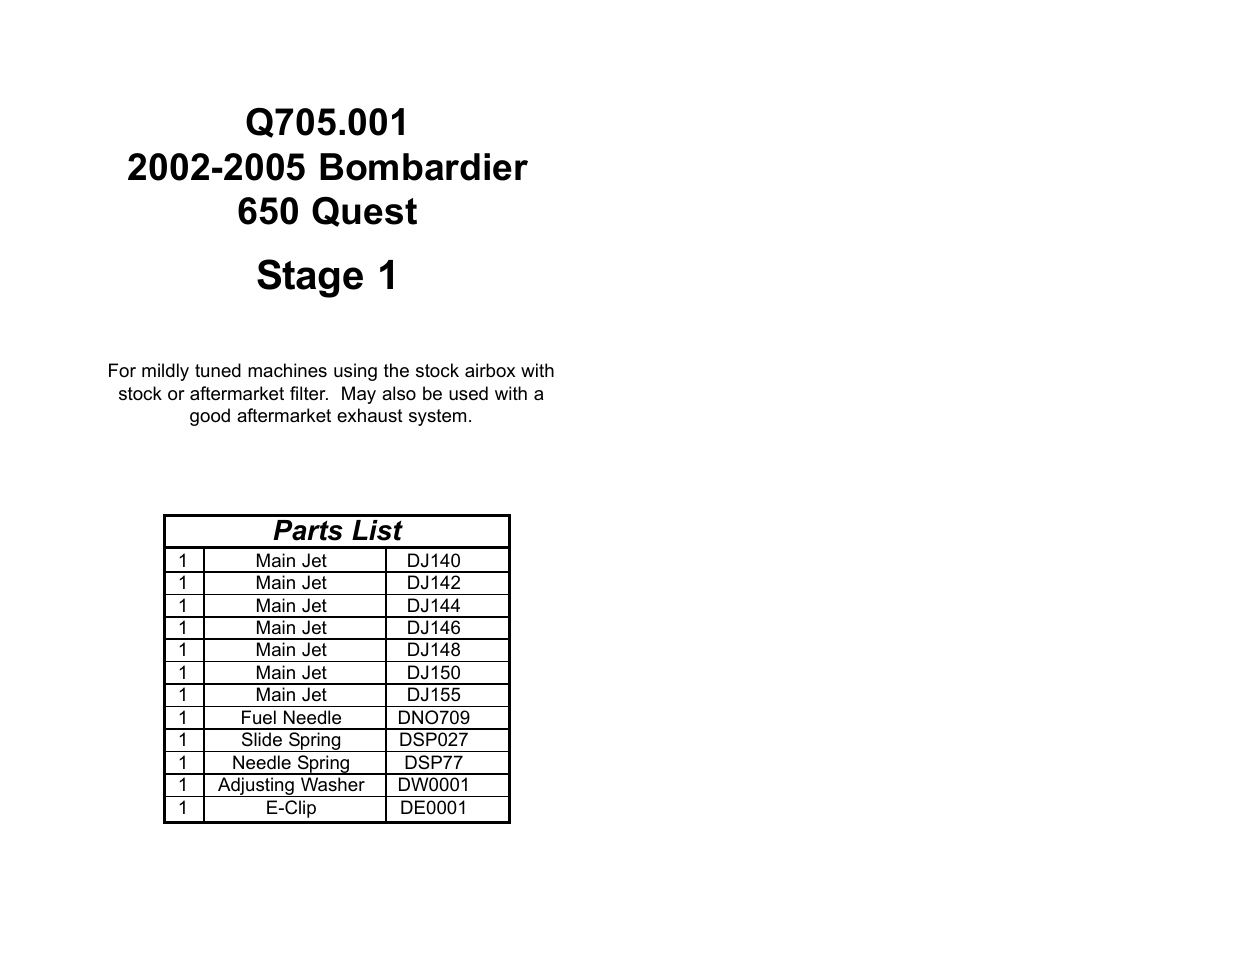 High Lifter DynoJet Jet Kit for Bombardier Quest 650 (02-05) User Manual |  2 pages